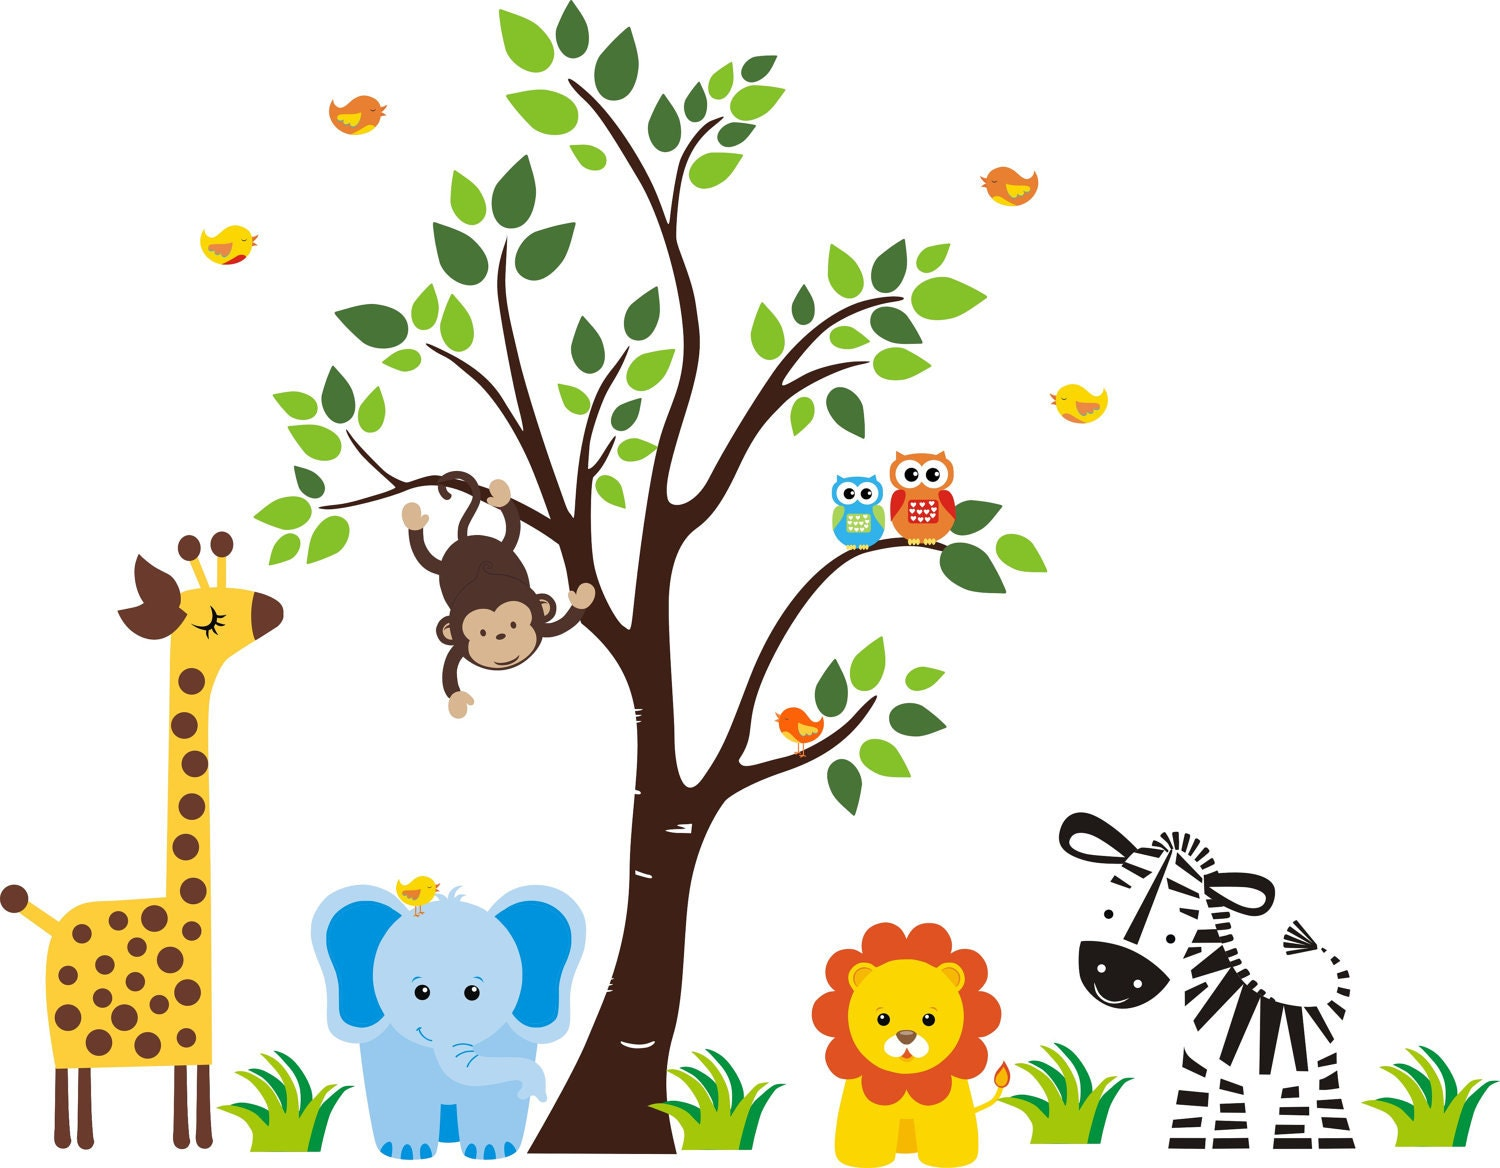 Wall decals nursery baby wall decals nursery by for Stickers infantiles